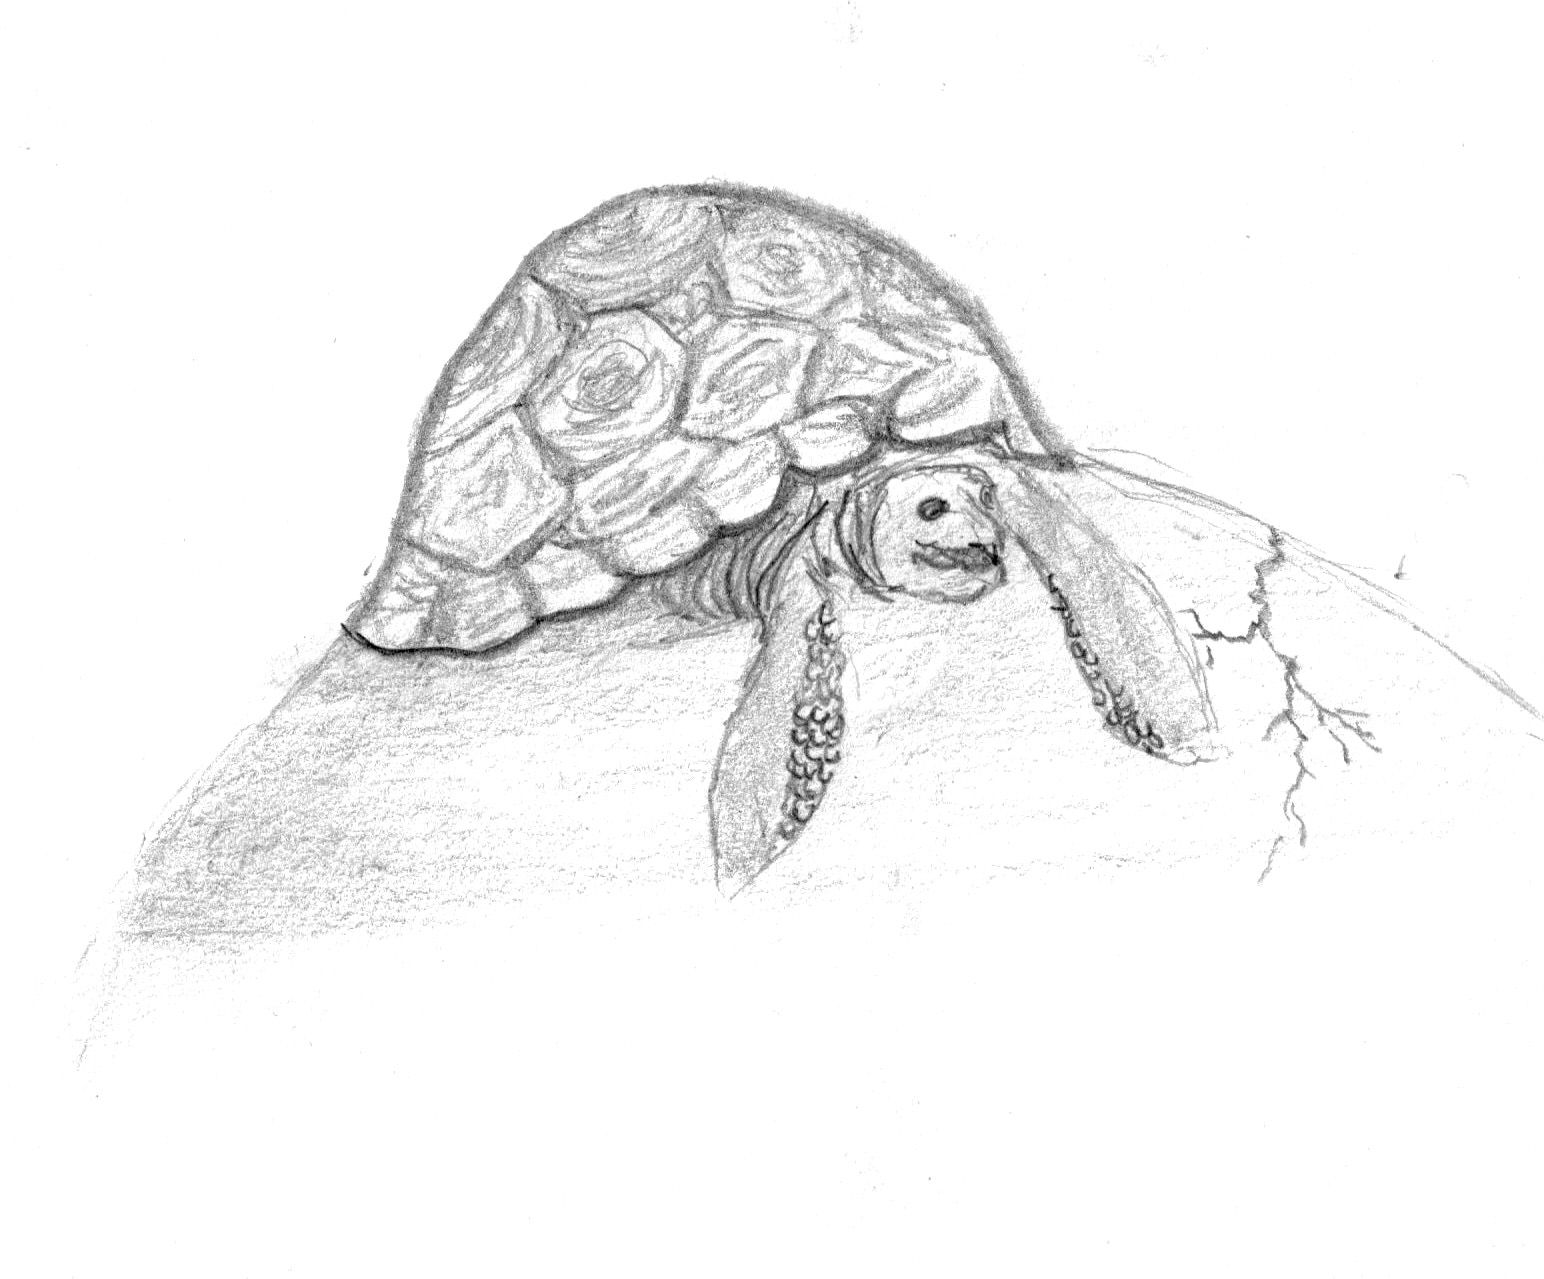 Turtle pencil sketch my artwork drawings sketches artwork